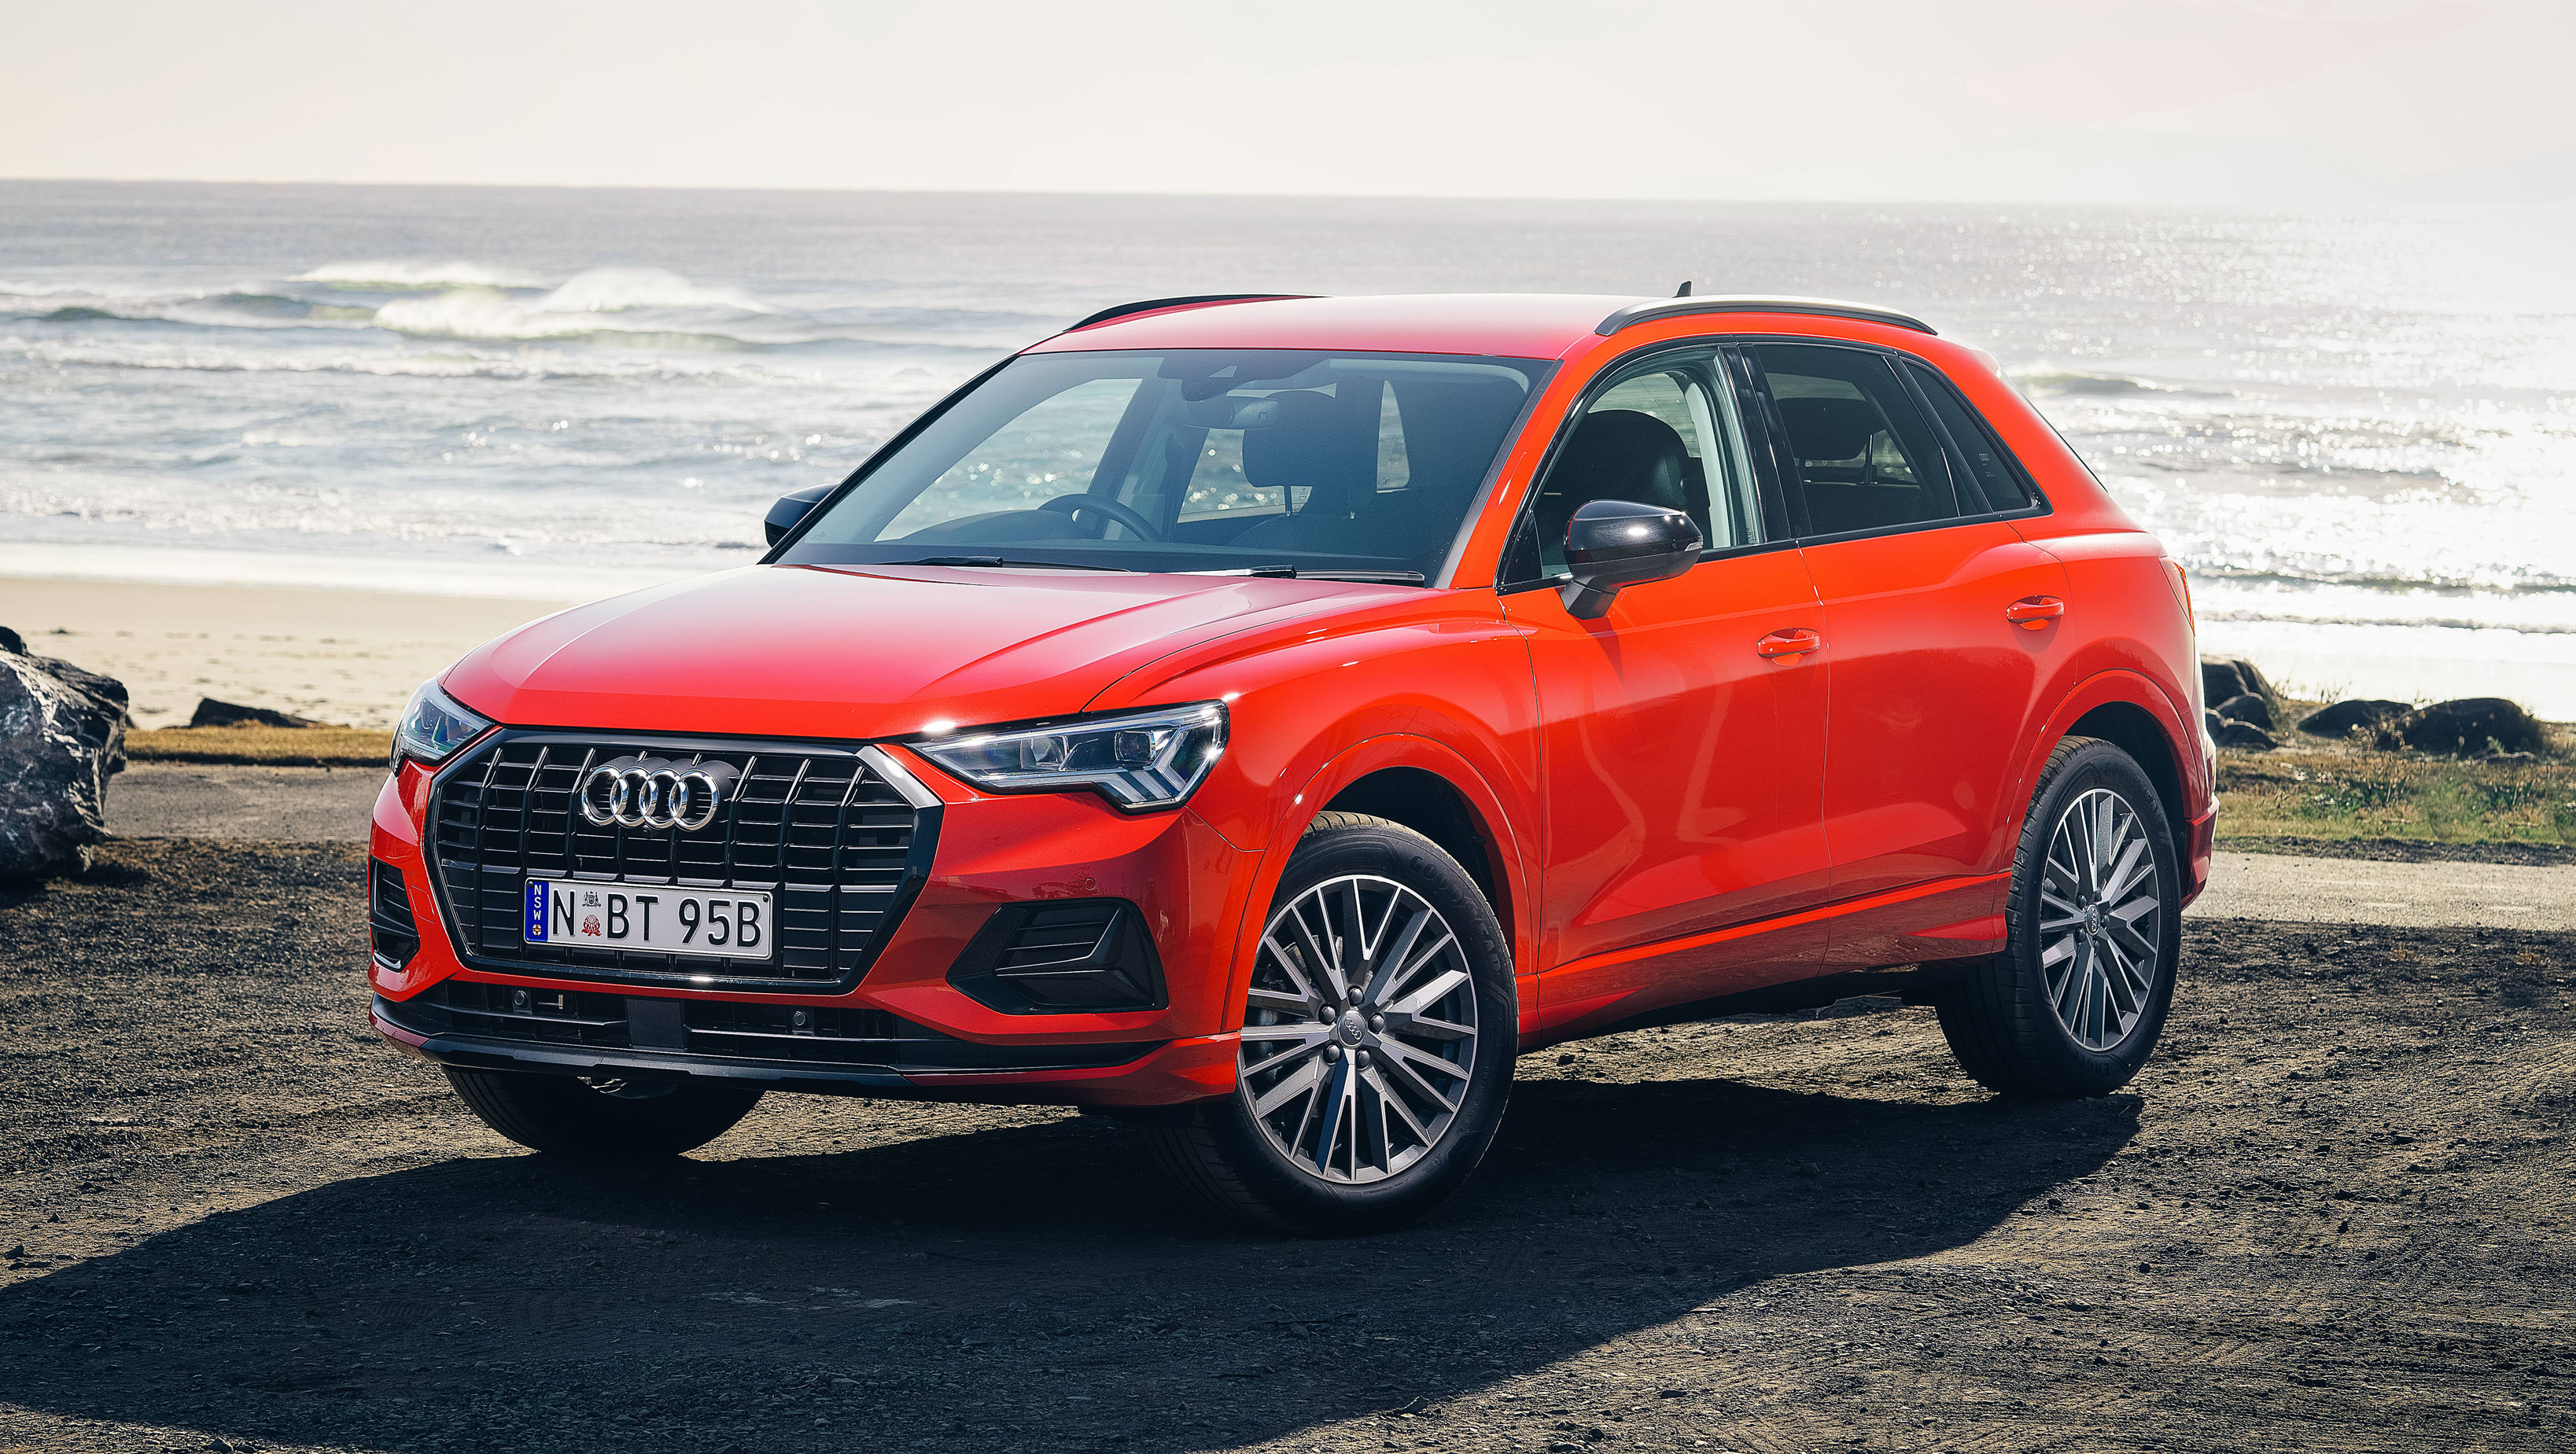 Audi Q3 2020 Pricing And Specs Confirmed Single Engine Available Now But More To Come Next Year Car News Carsguide